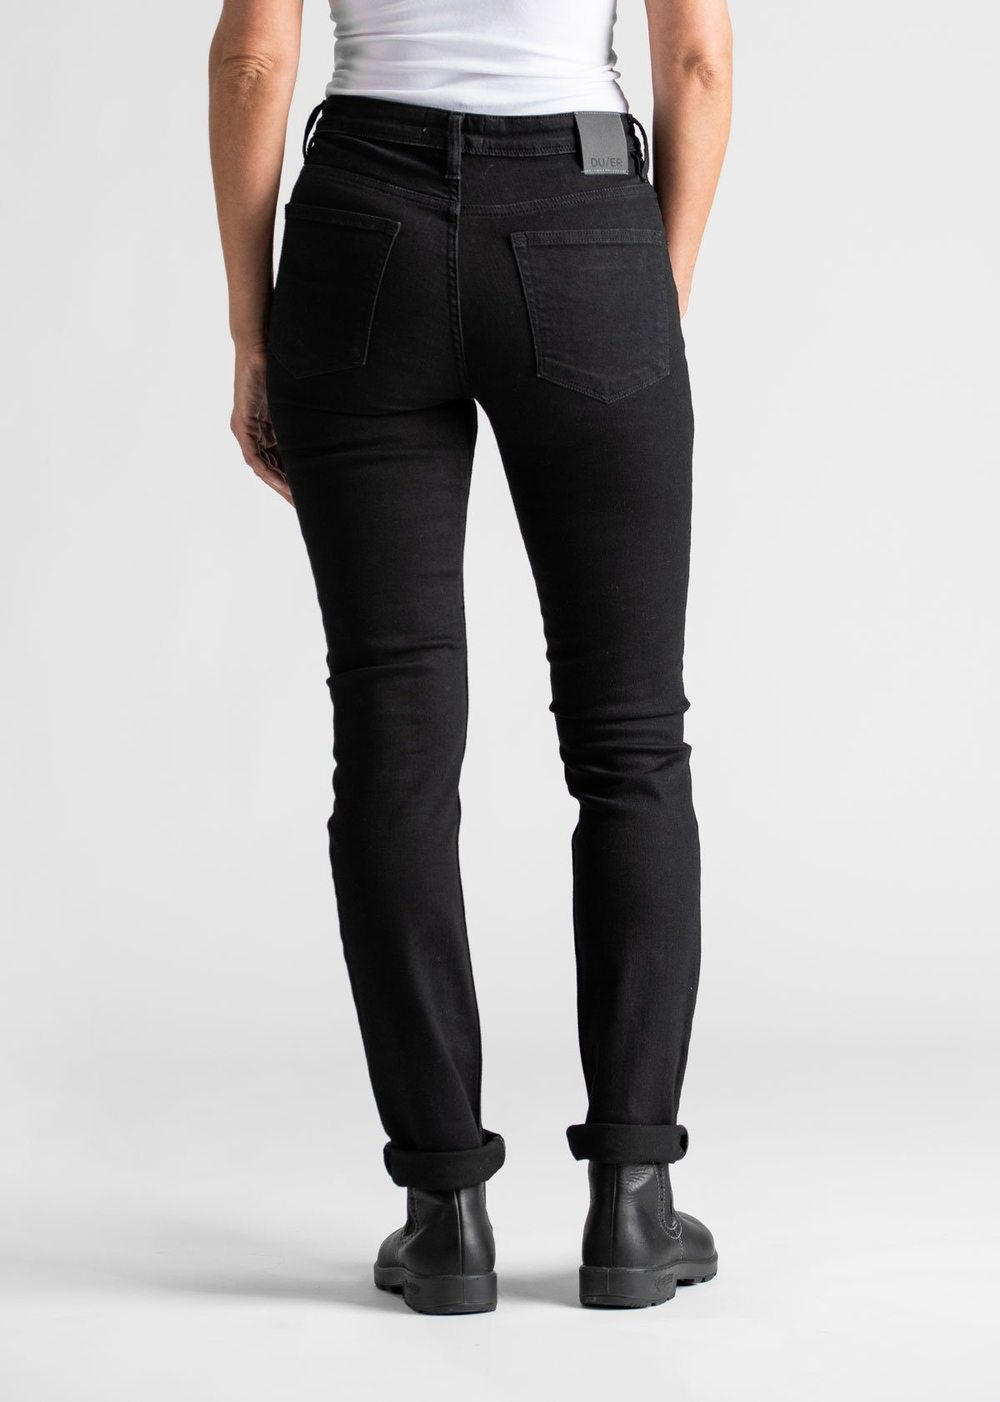 DUER SLIM STRAIGHT MID RISE STAY - DRY JEANS - DAME